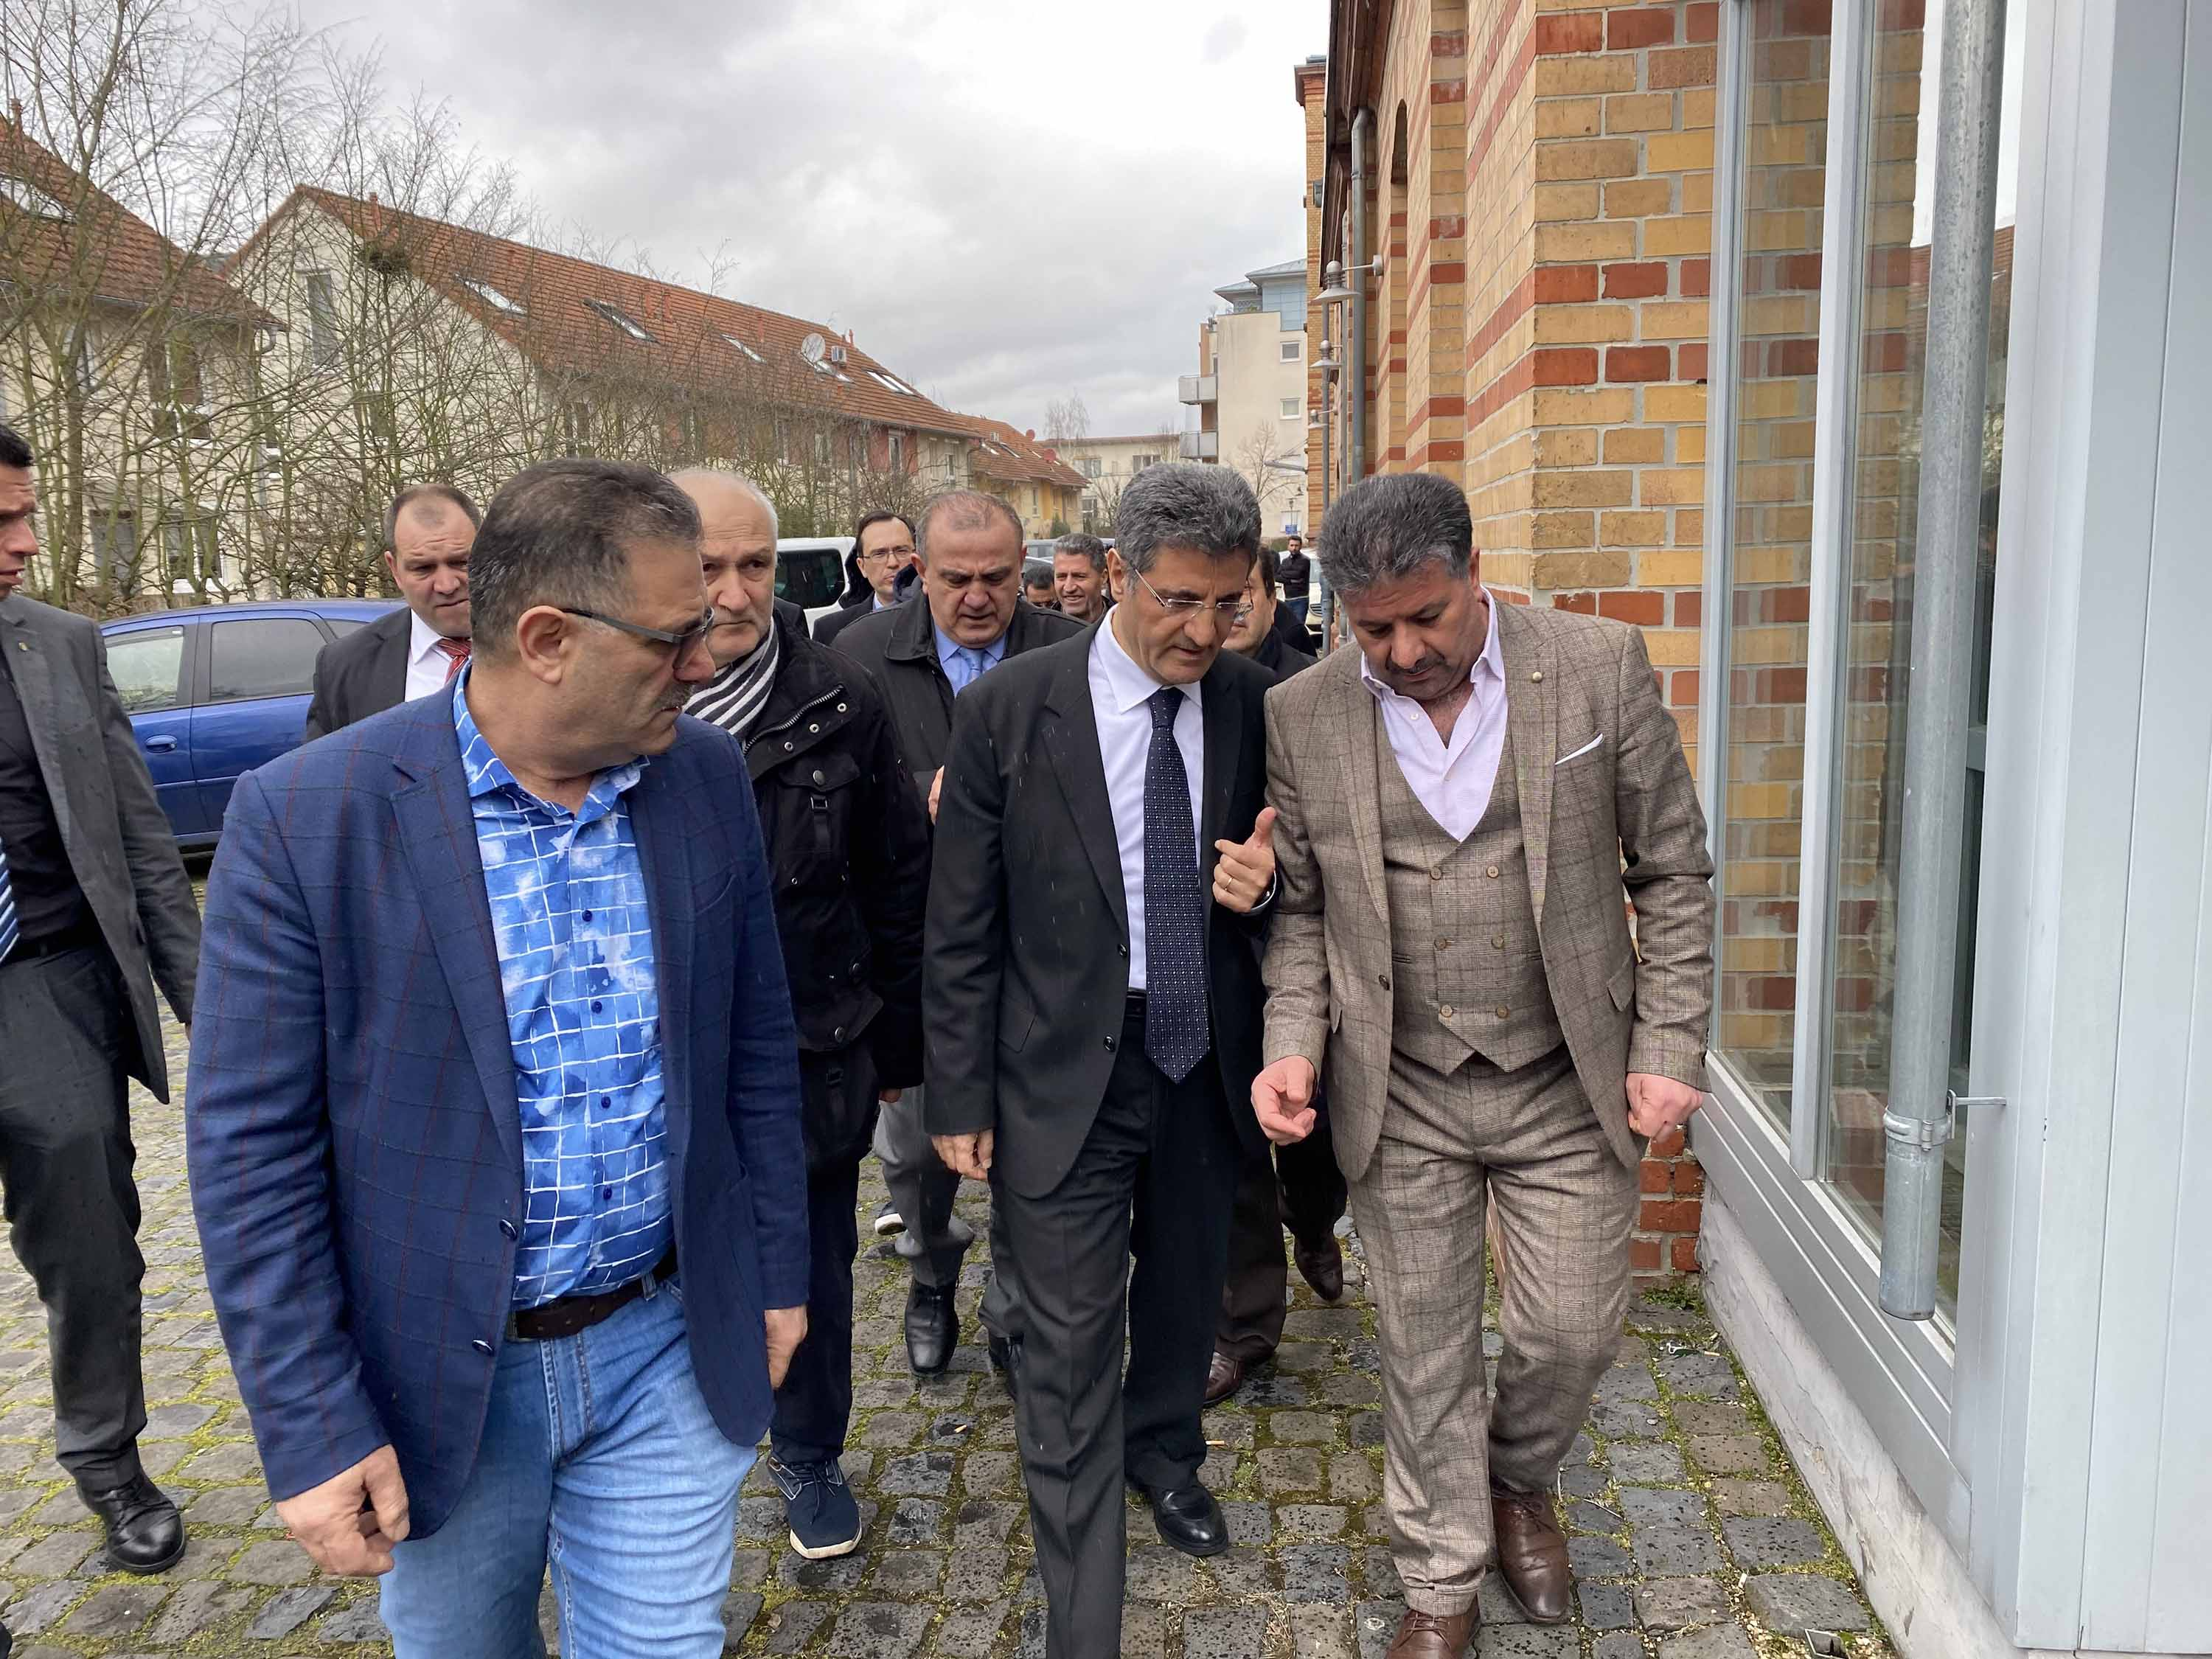 Turkey's Ambassador to Berlin, Ali Kemal Aydin, second from right, gathers with citizens near the scene of the shootings in Hanau, Germany on Thursday.